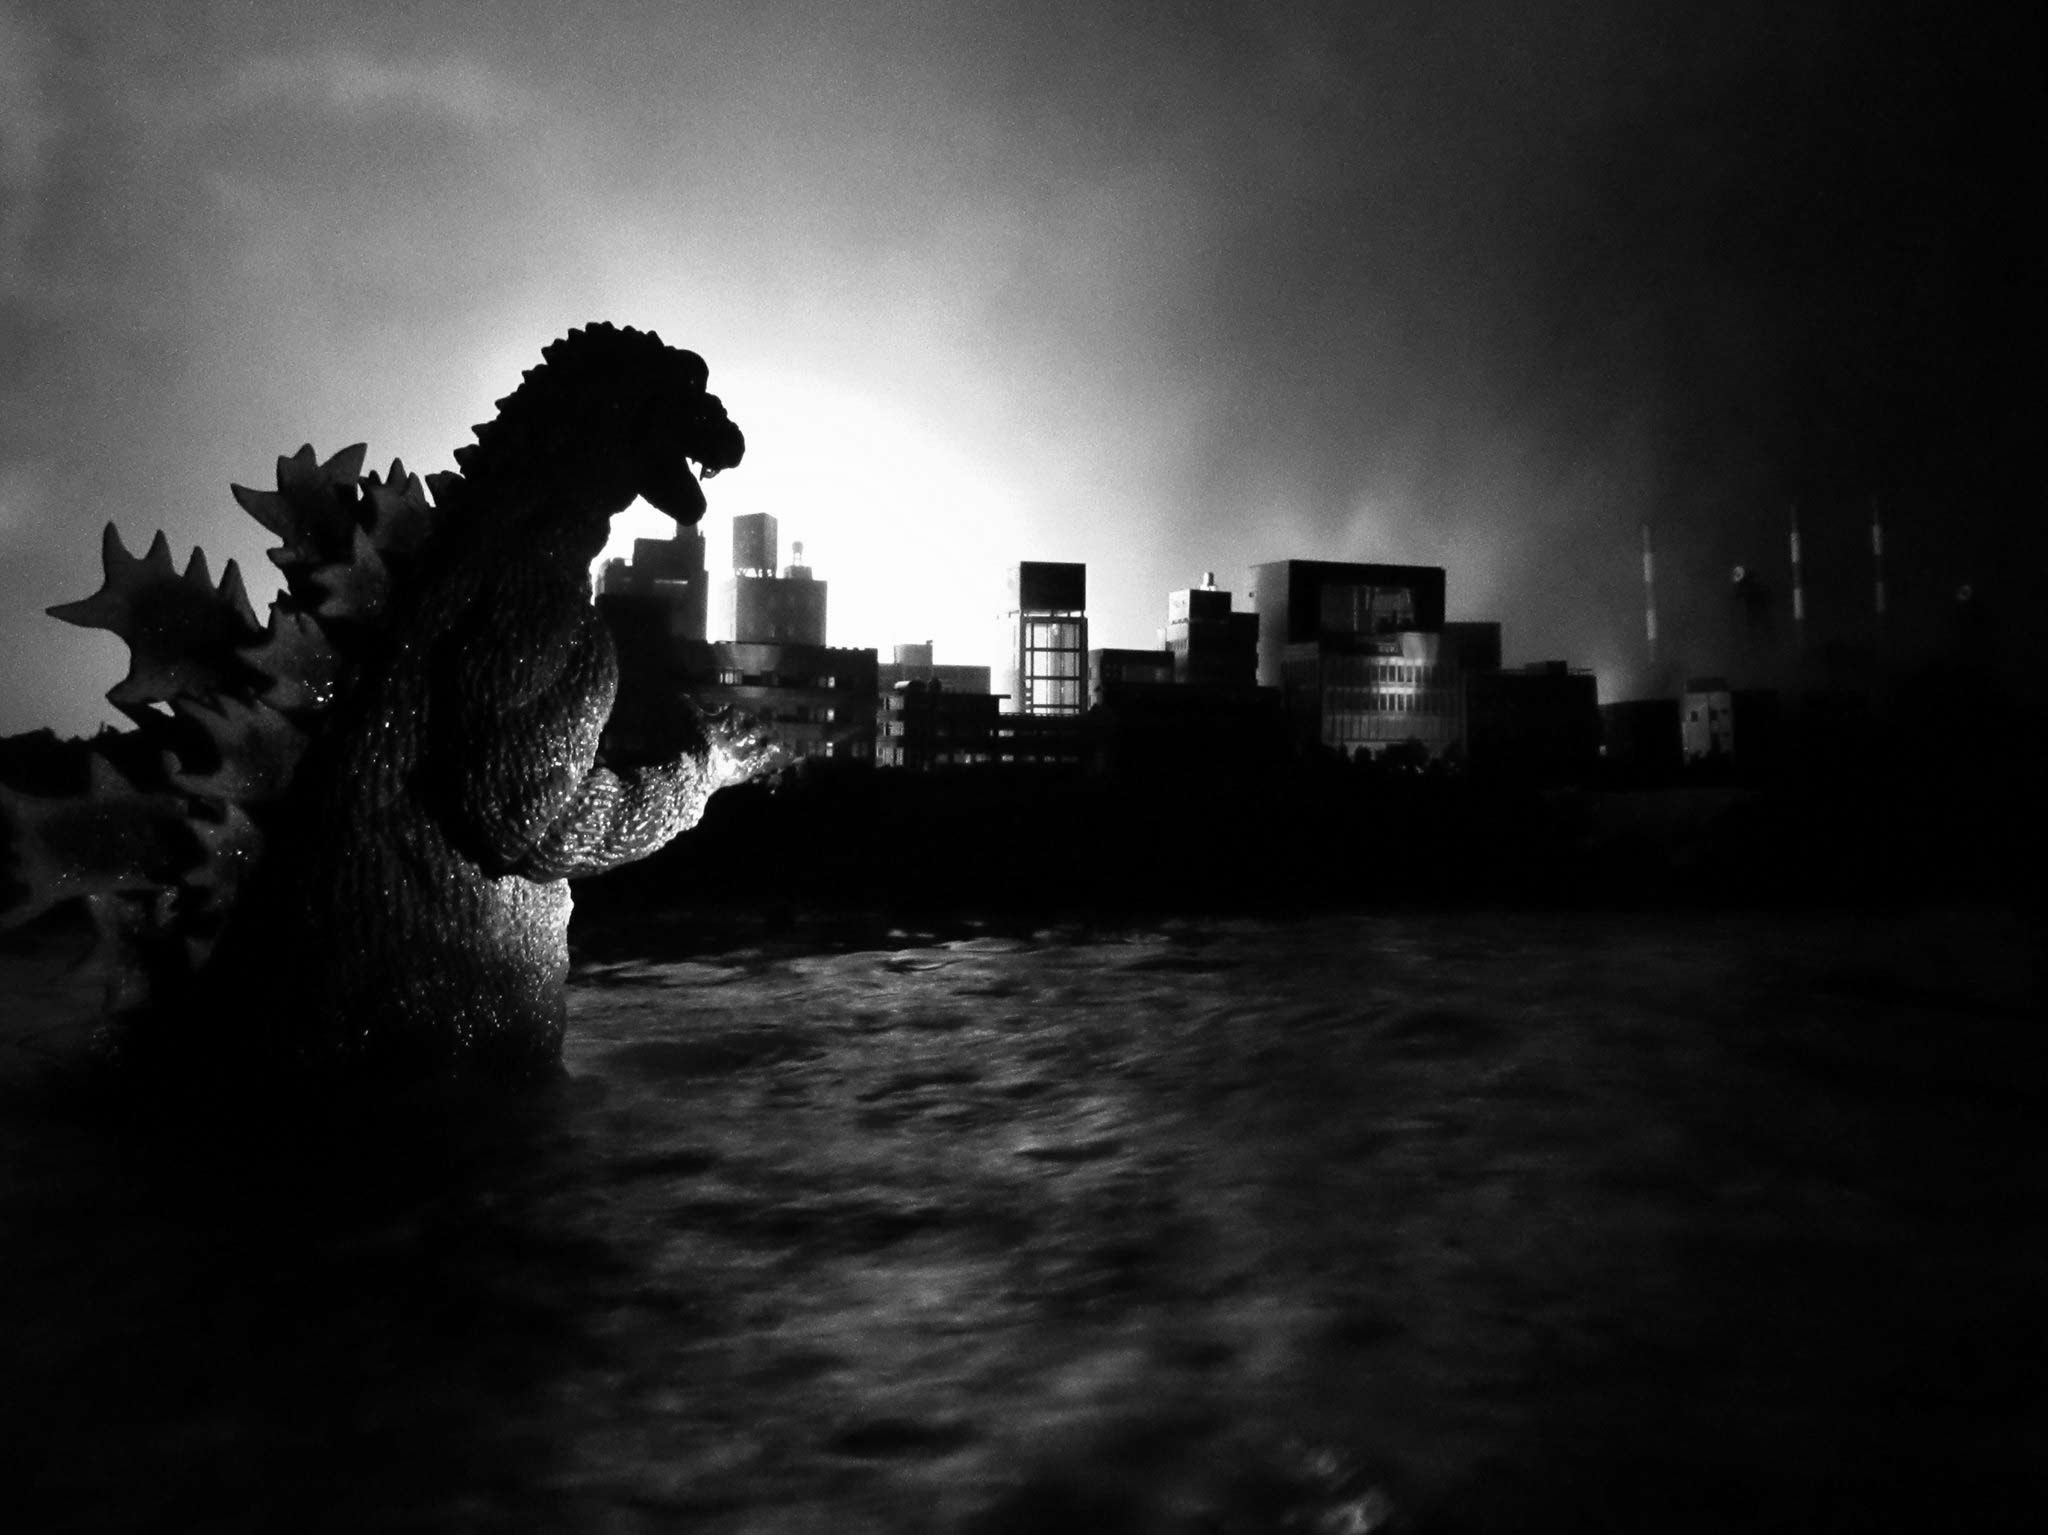 X-Plus Godzilla 1954 vinyl figure diorama by Steve Harron.